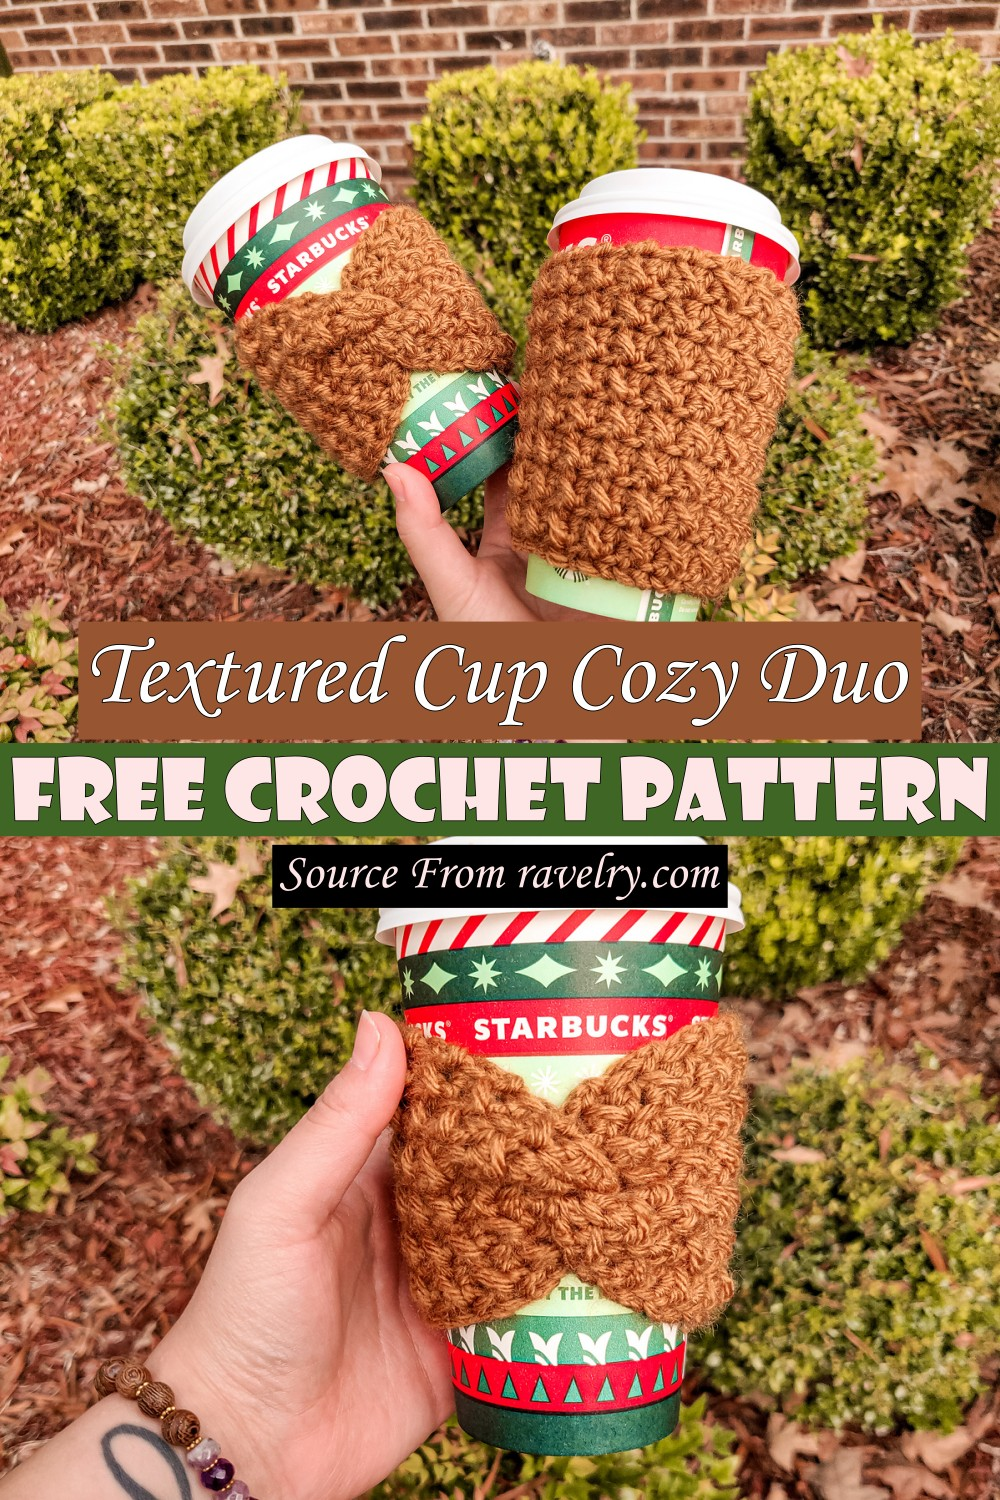 Free Crochet Textured Cup Cozy Duo Pattern